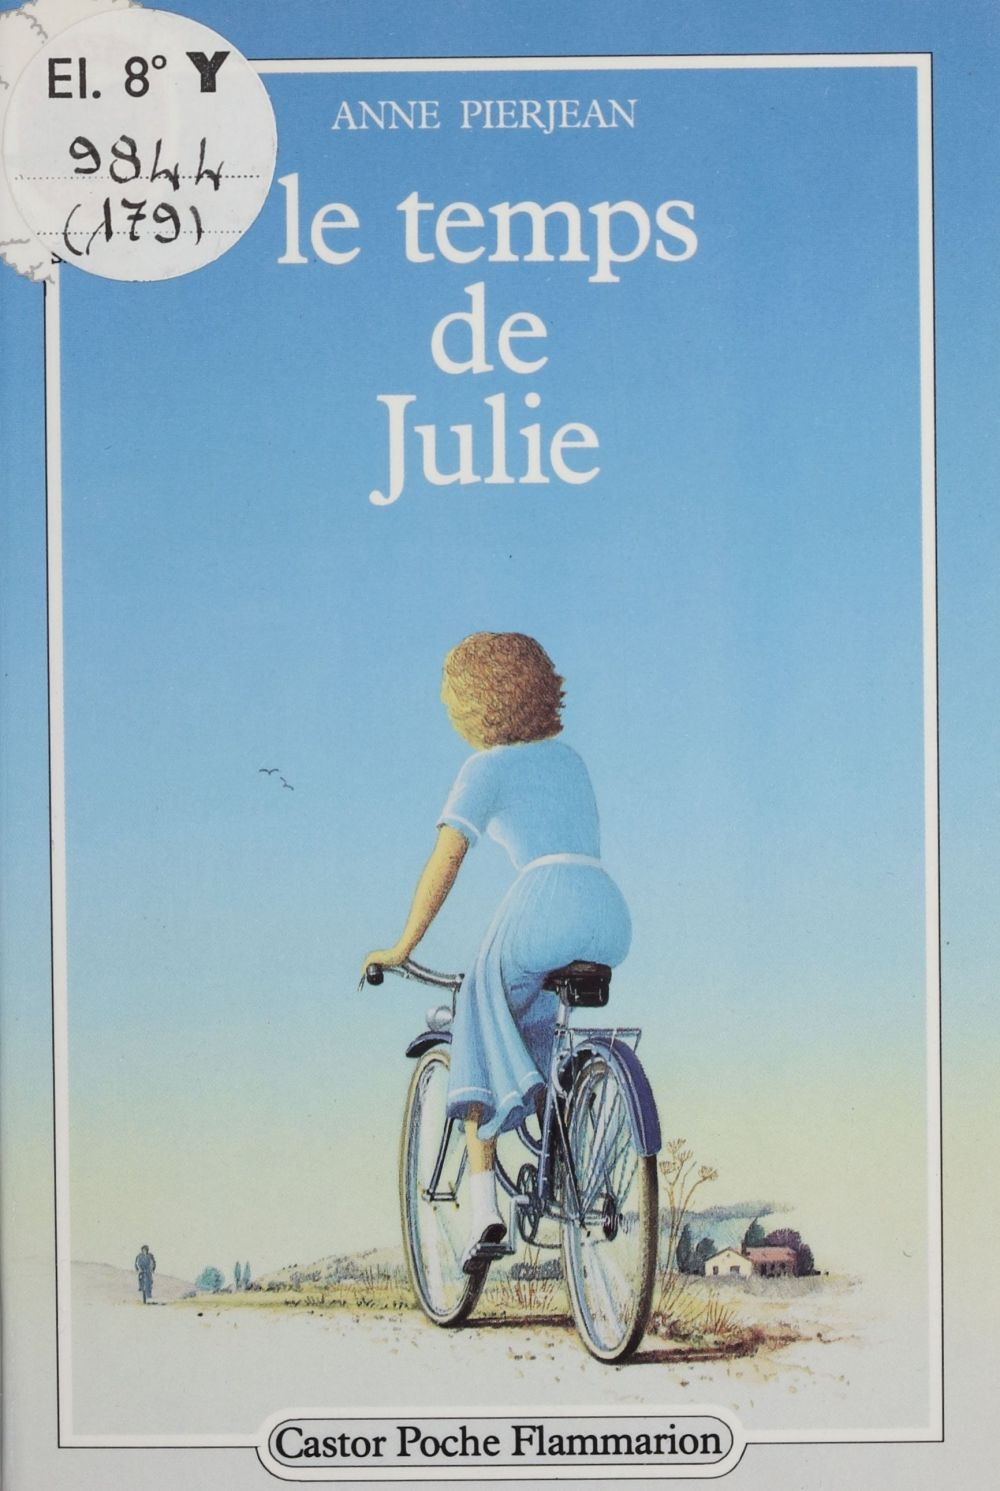 Le Temps du Julie